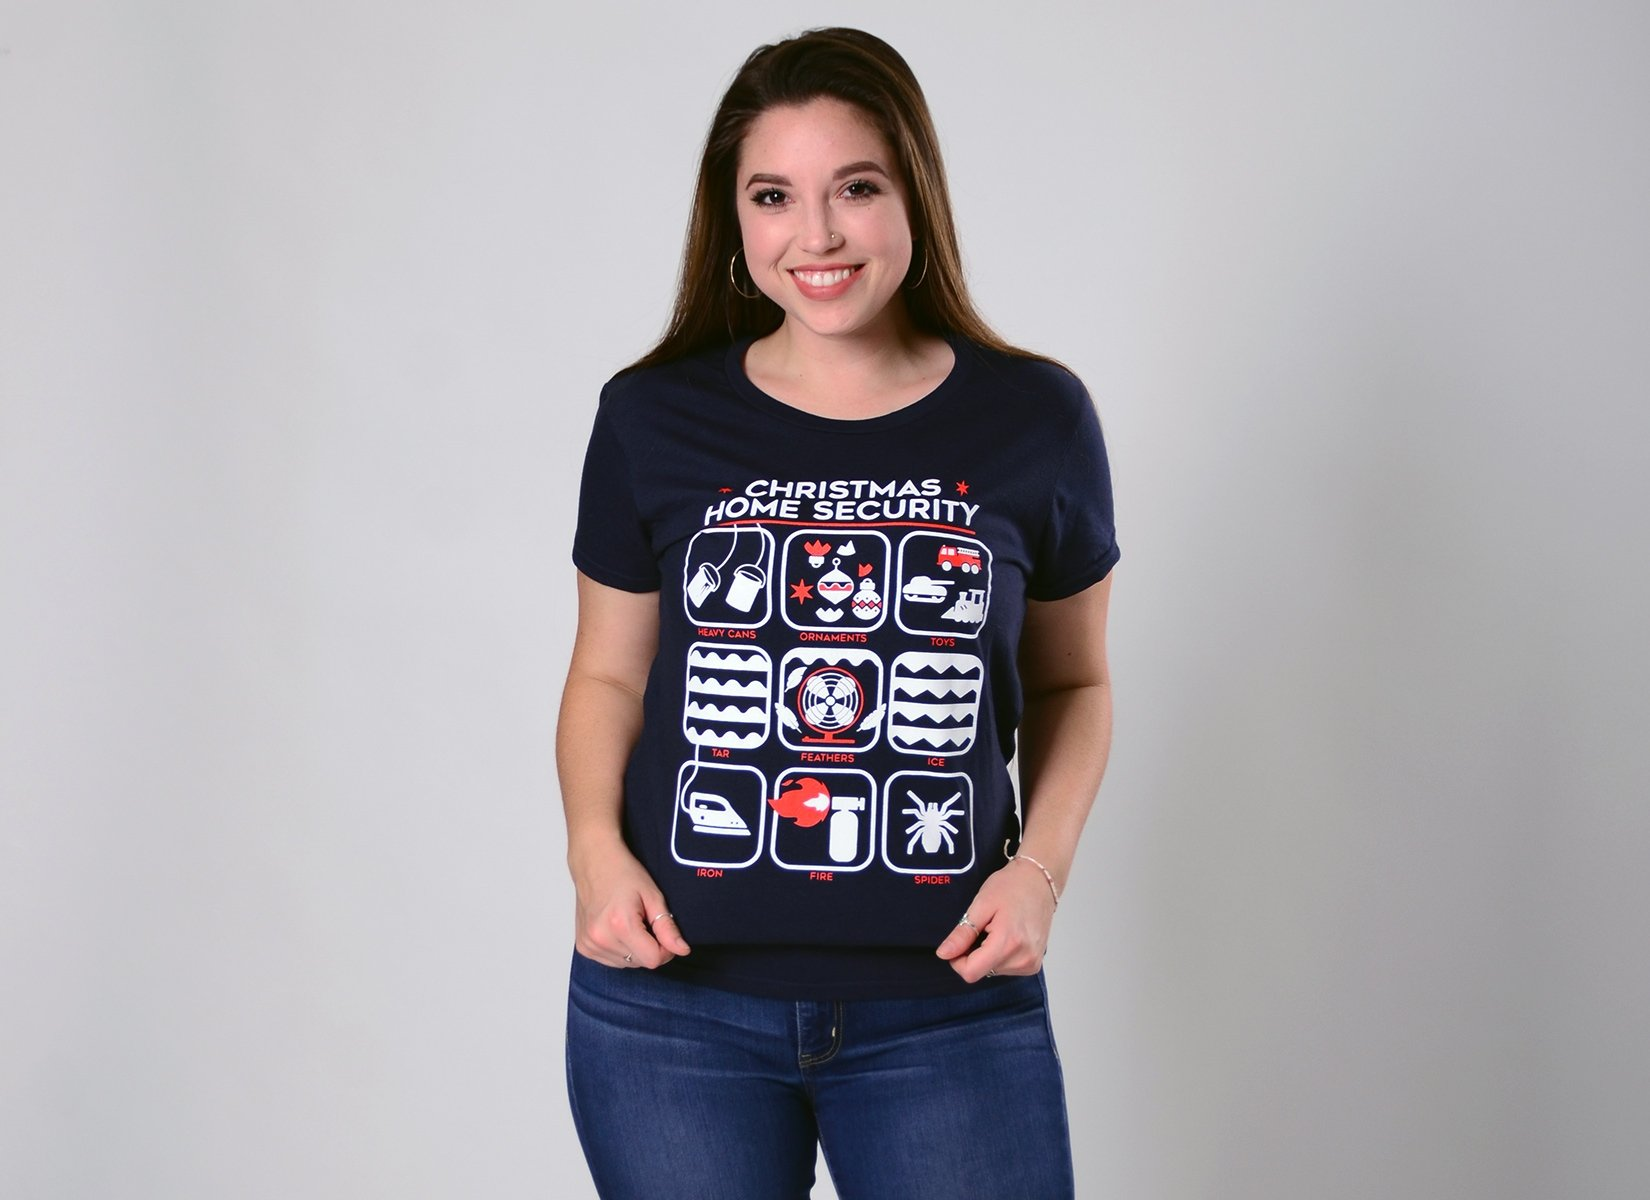 Christmas Home Security on Womens T-Shirt